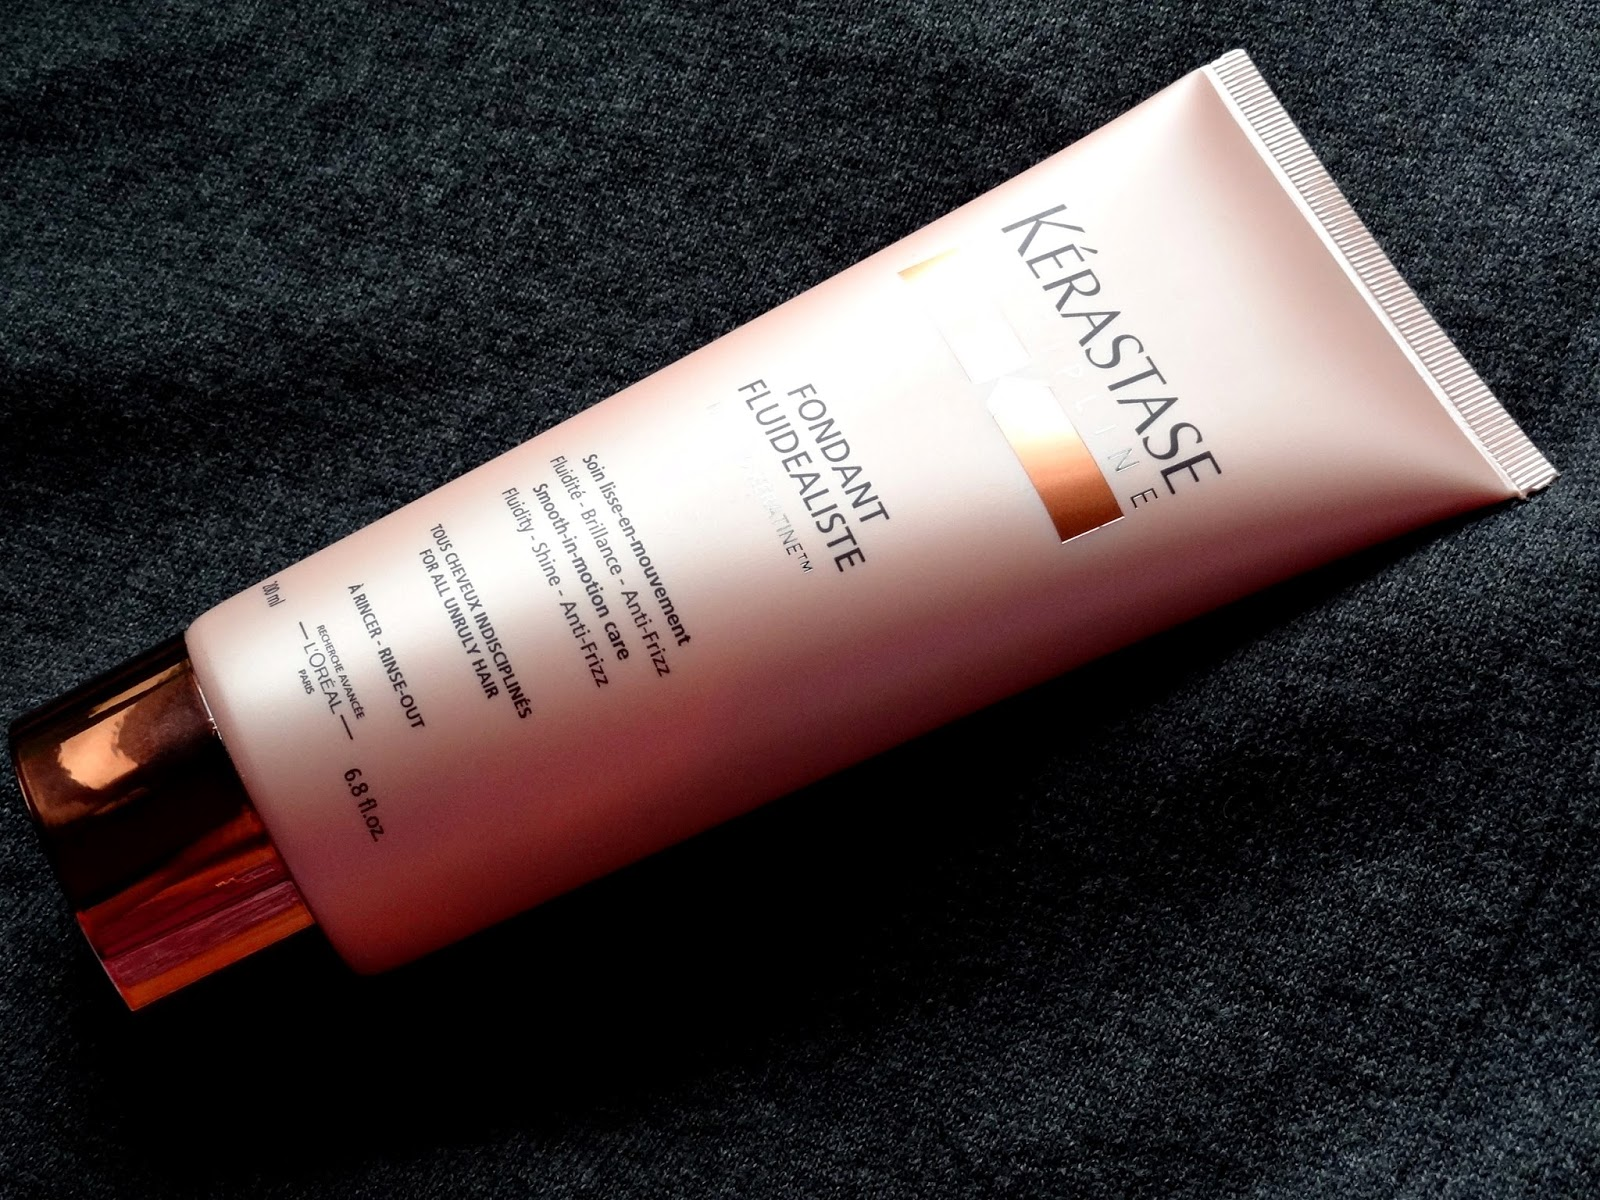 Kerastase Discipline Haircare Collection Review, photos, Swatches, ingredients